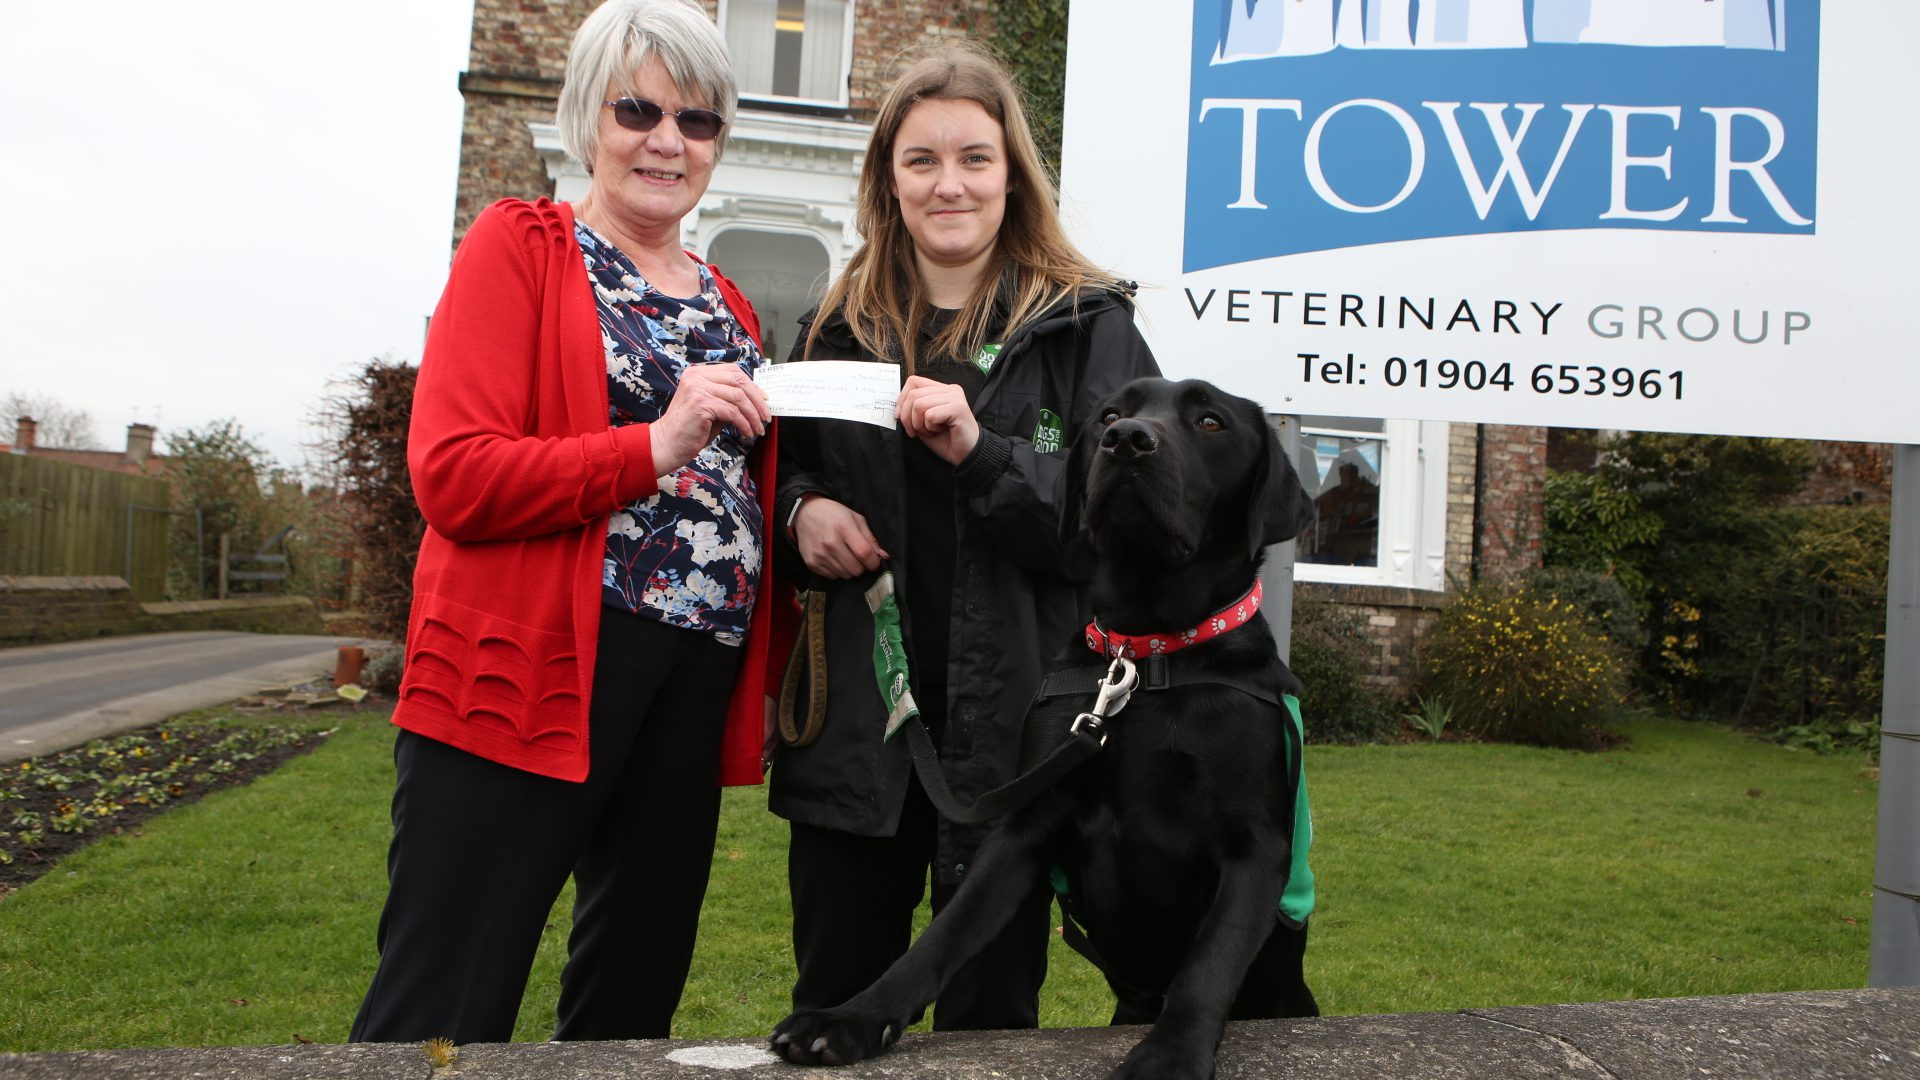 York dog owner Christine's legacy of love boosts vet practice's worthy causes